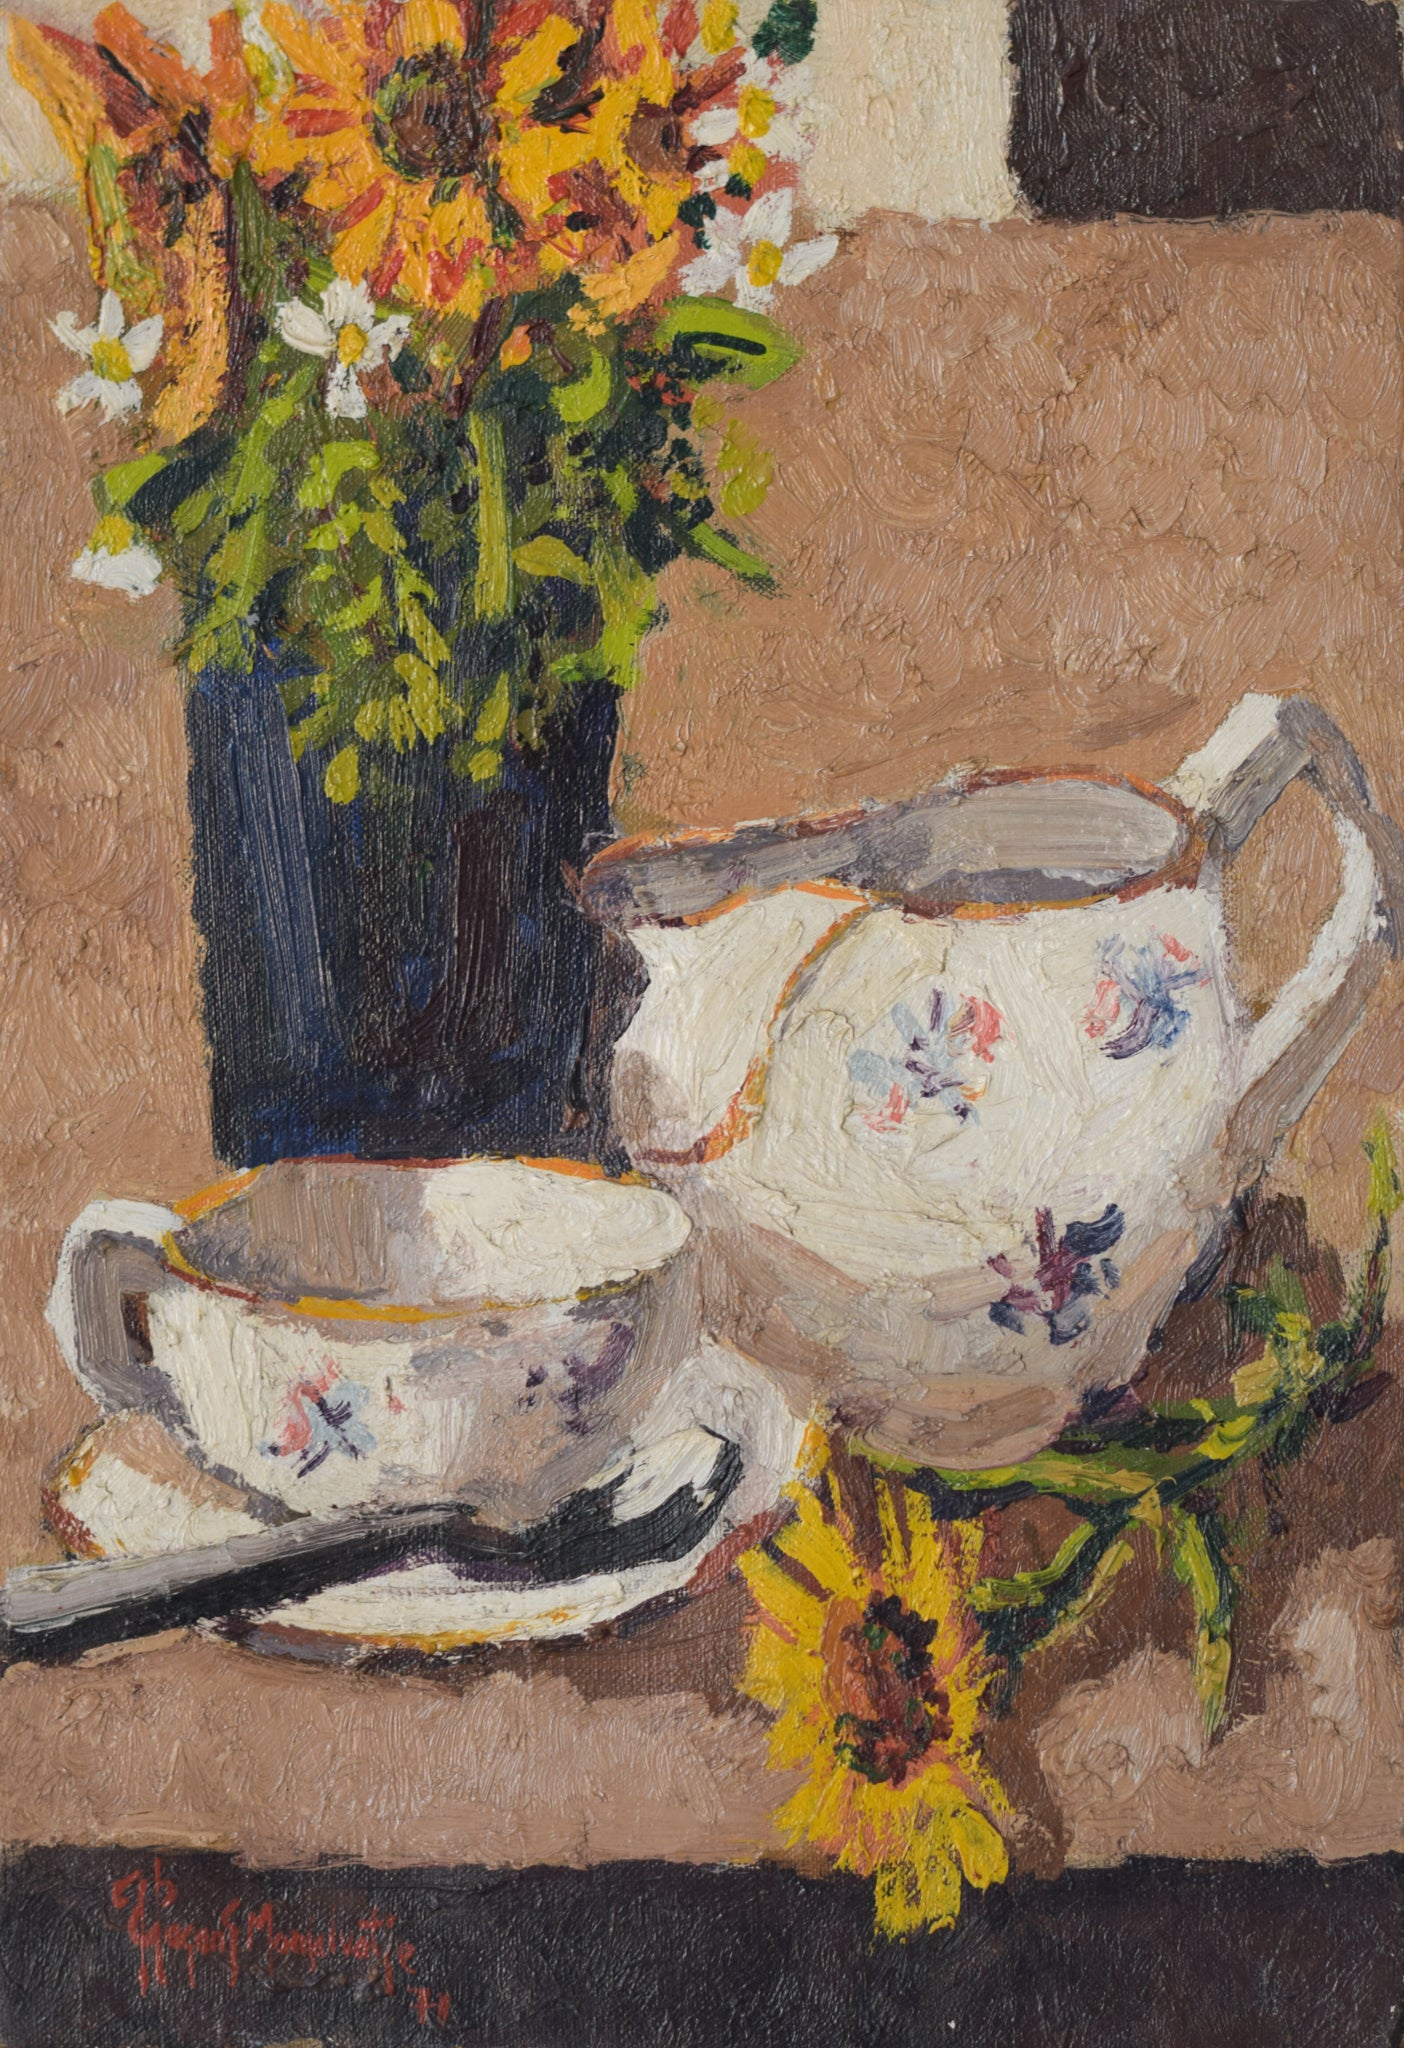 Still life with flowers, tea cup and jug